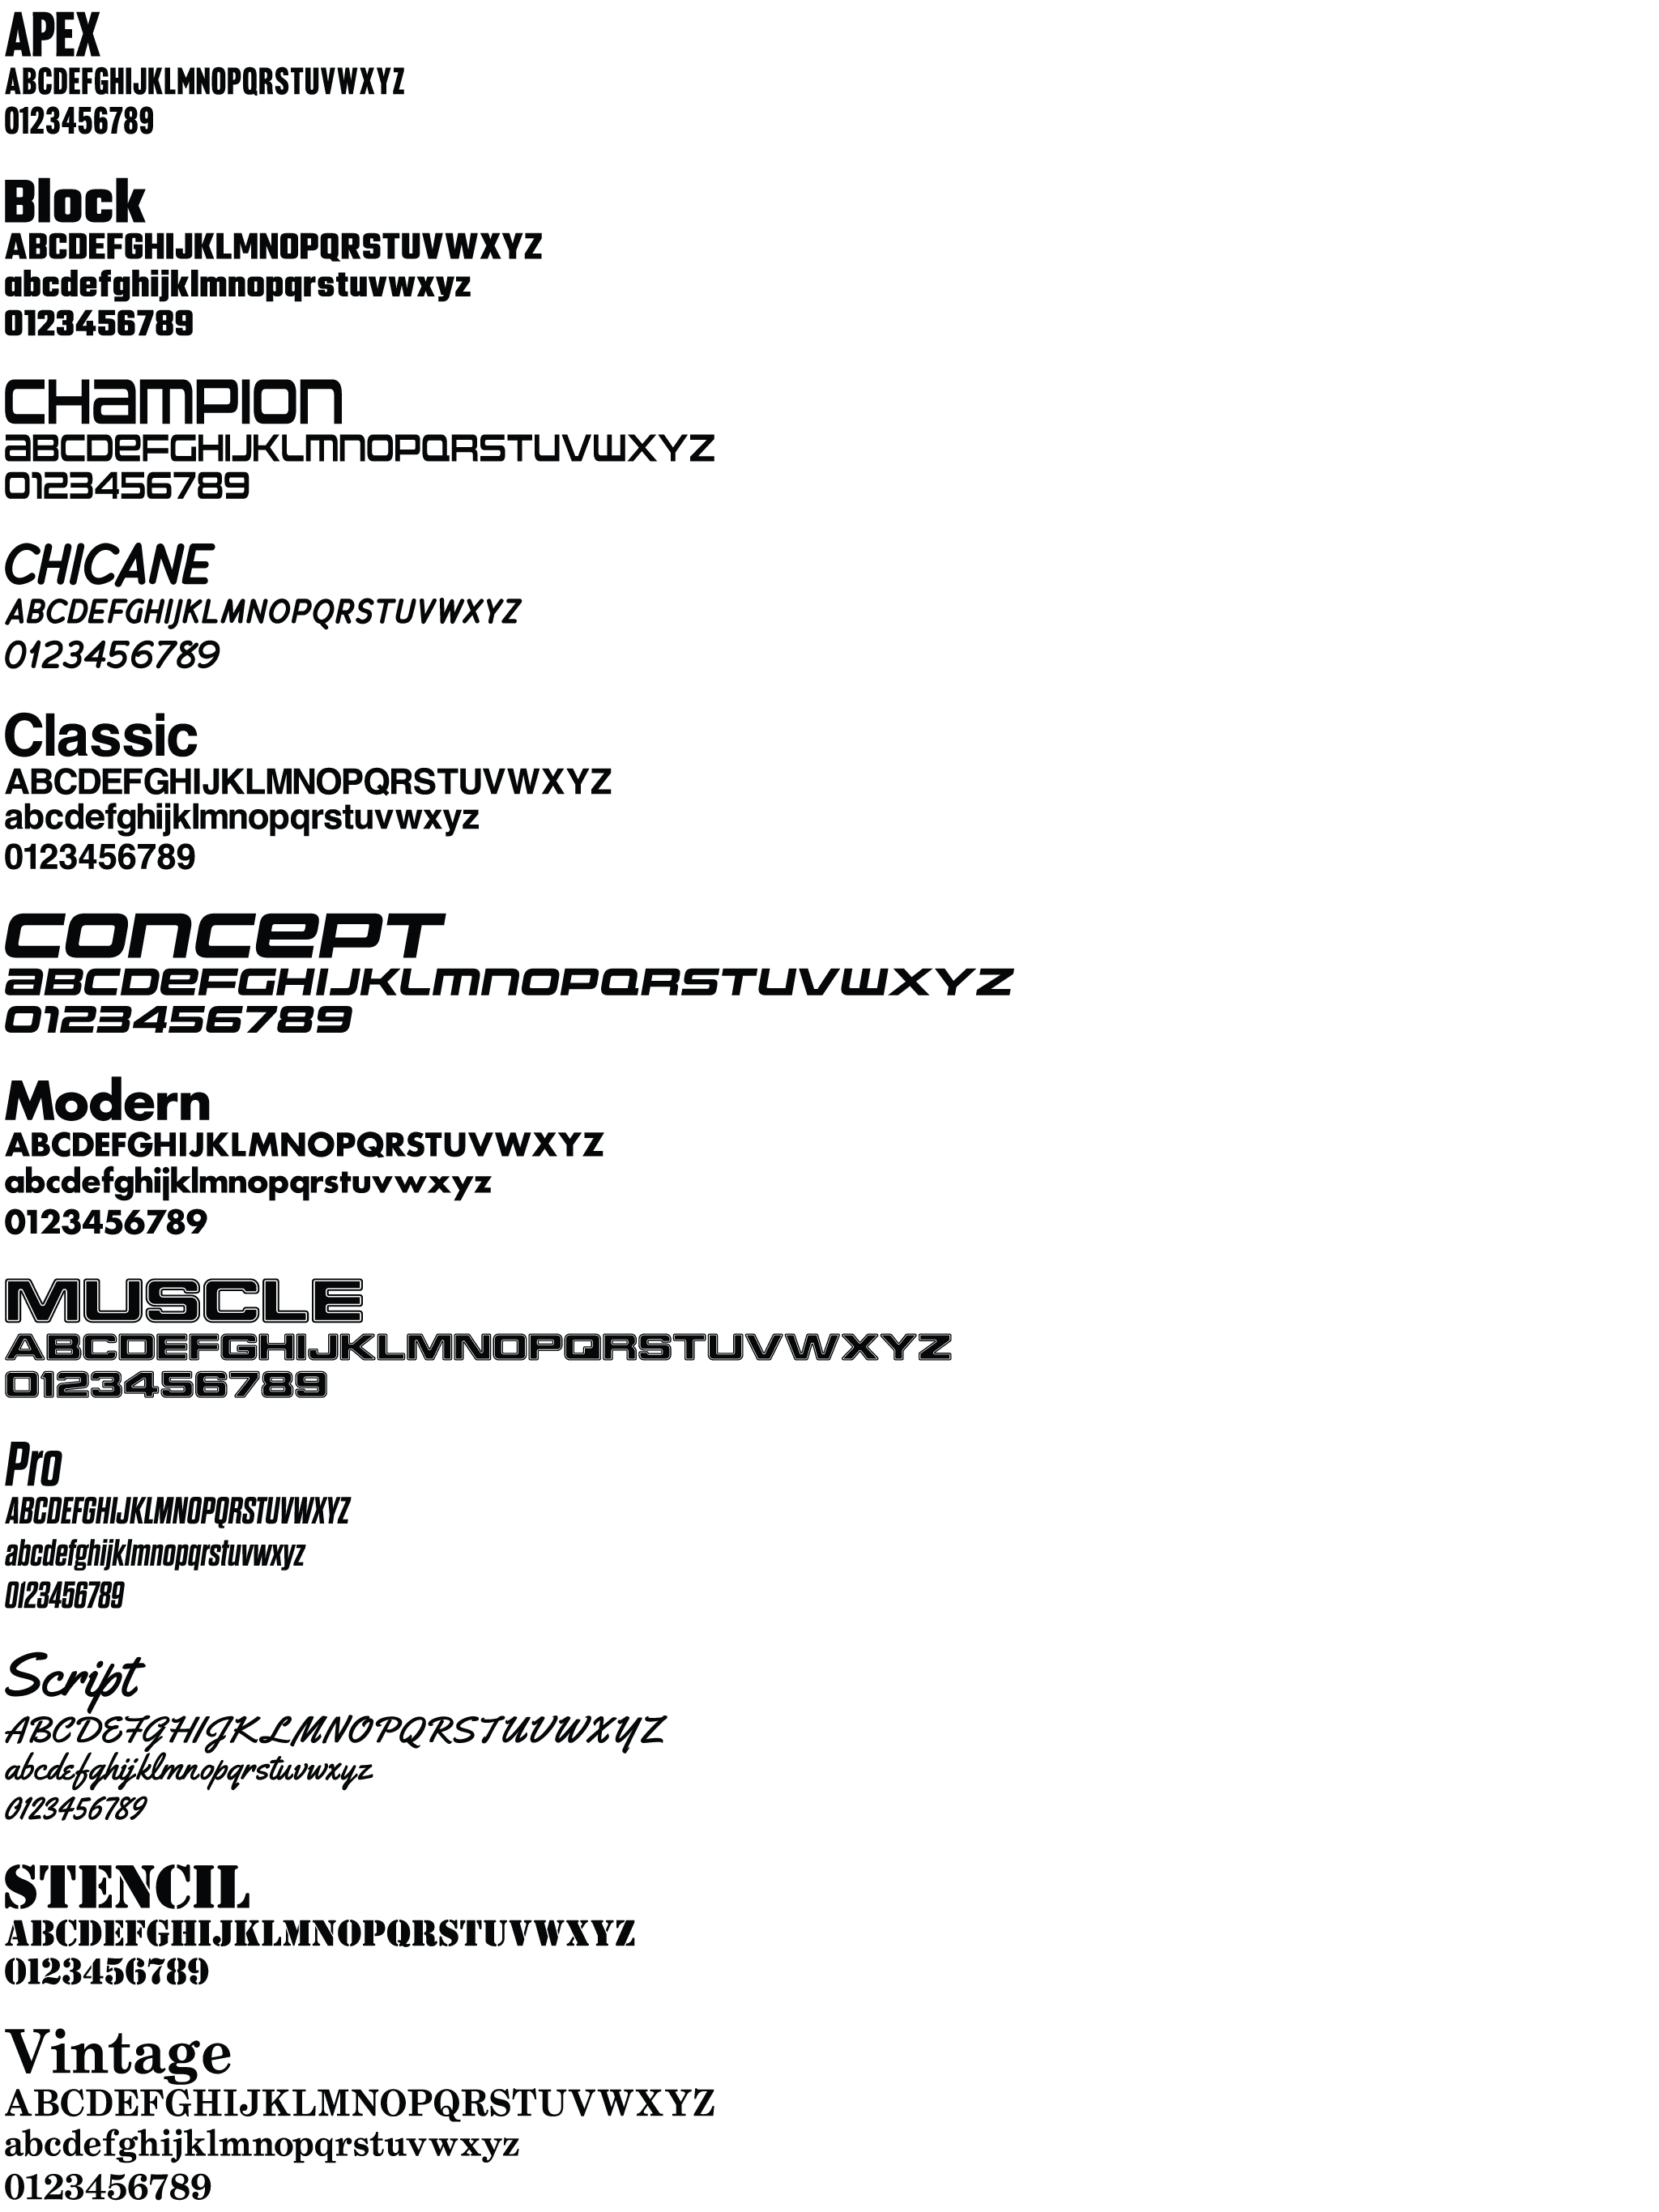 TrackDecals Font List